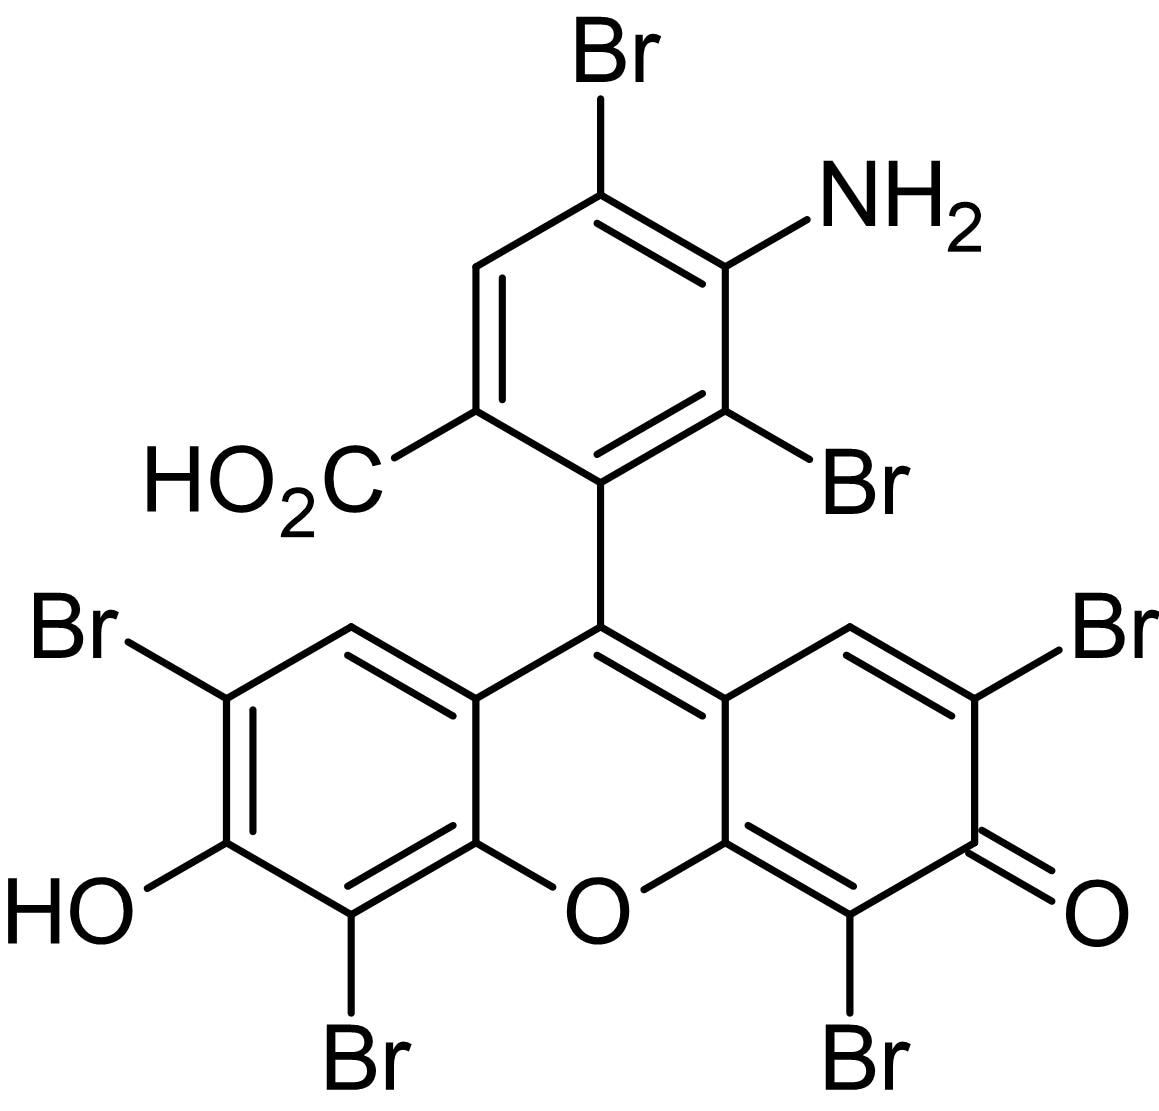 Chemical Structure - Inhibitor 6e (PRMT1 inhibitor 6e), PRMT1 inhibitor (ab144665)